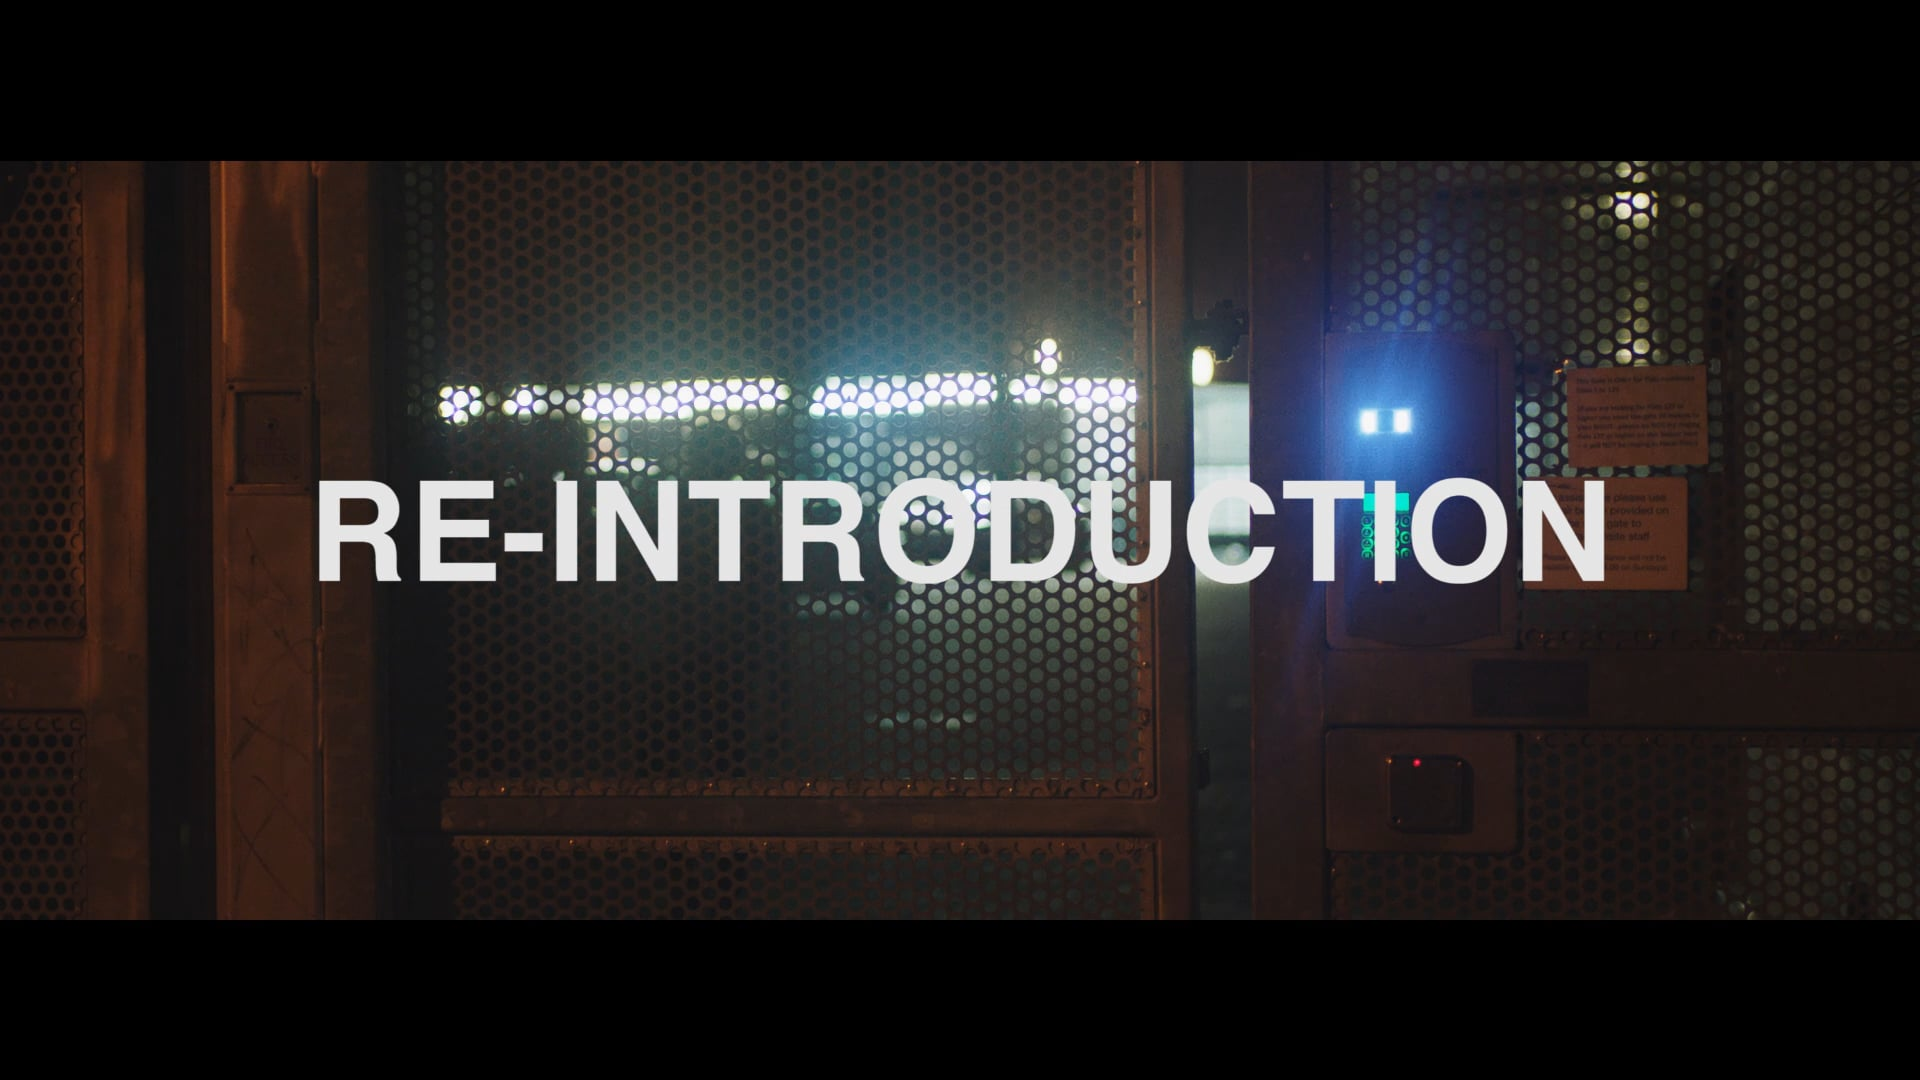 RE-INTRODUCTION